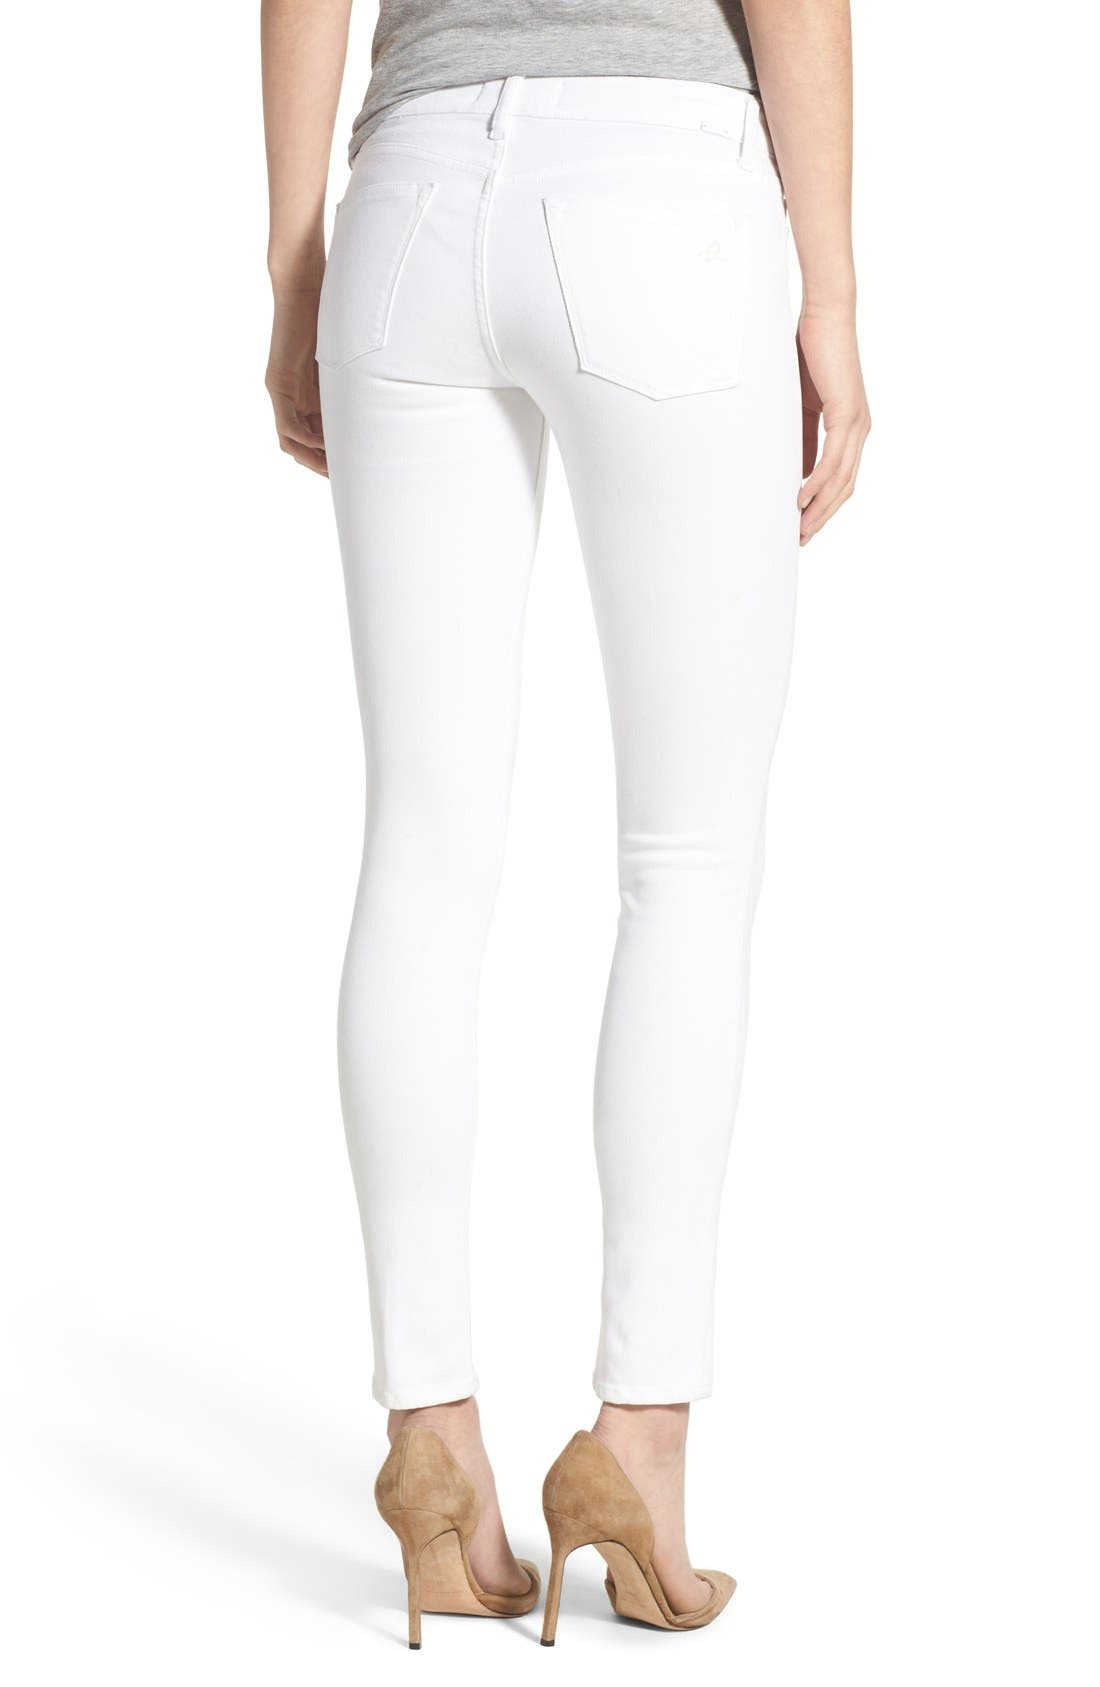 'Emma' Power Legging Jeans,                             Alternate thumbnail 2, color,                             Porcelain